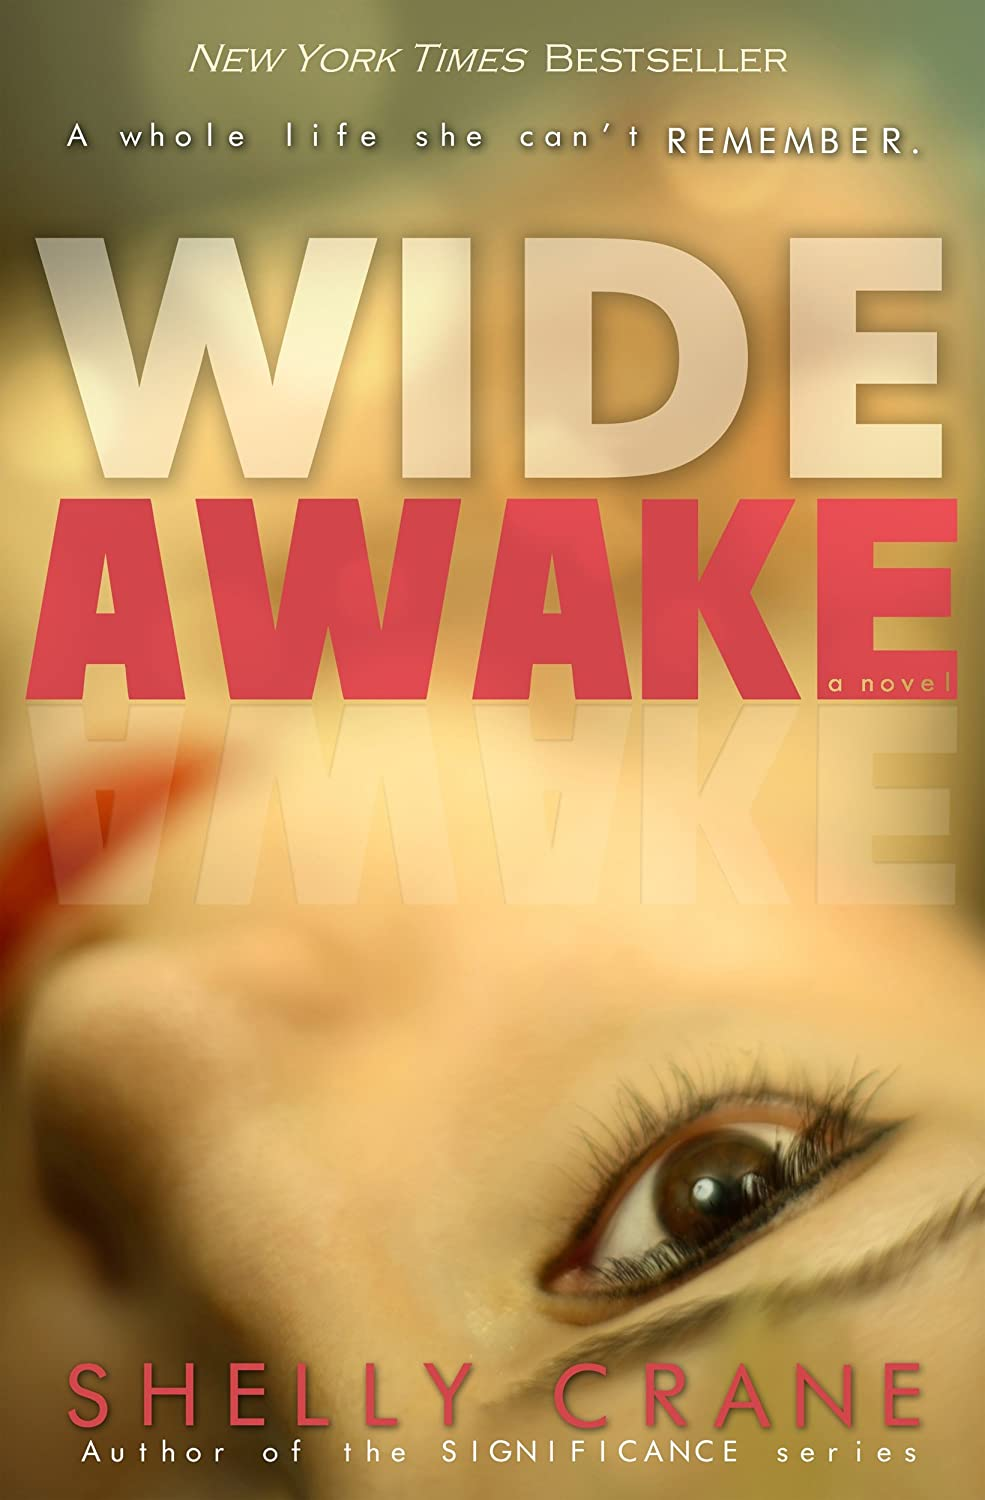 WIDE AWAKE by Shelly Crane